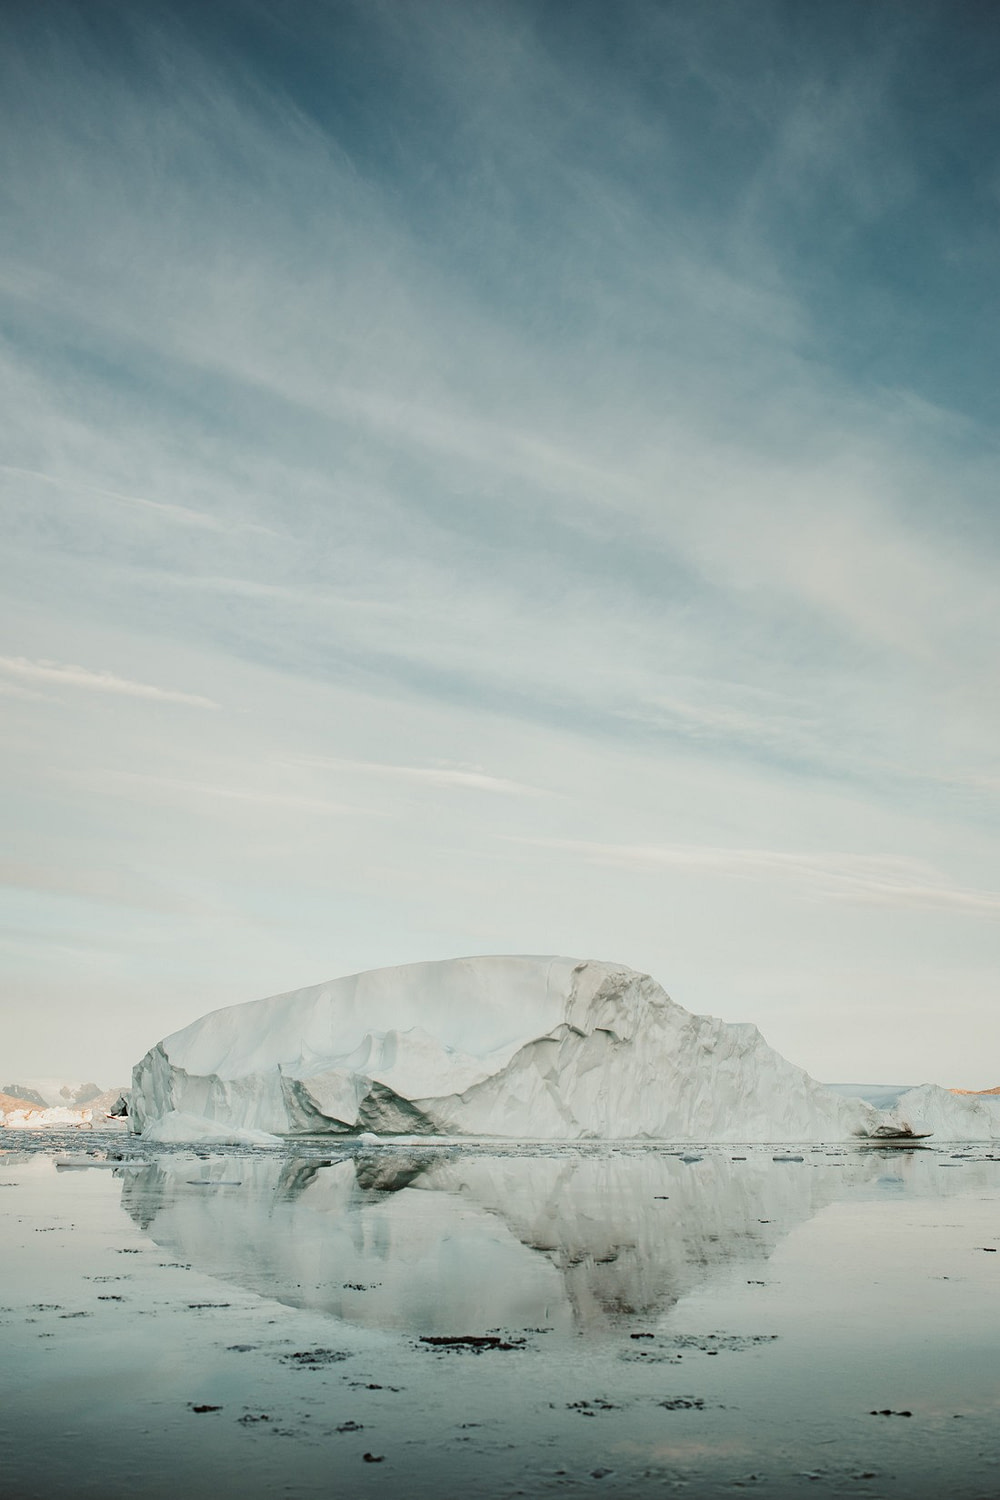 007 greenland arctic sailing expedition - Segel Expedition in Ost-Grönland 2/3